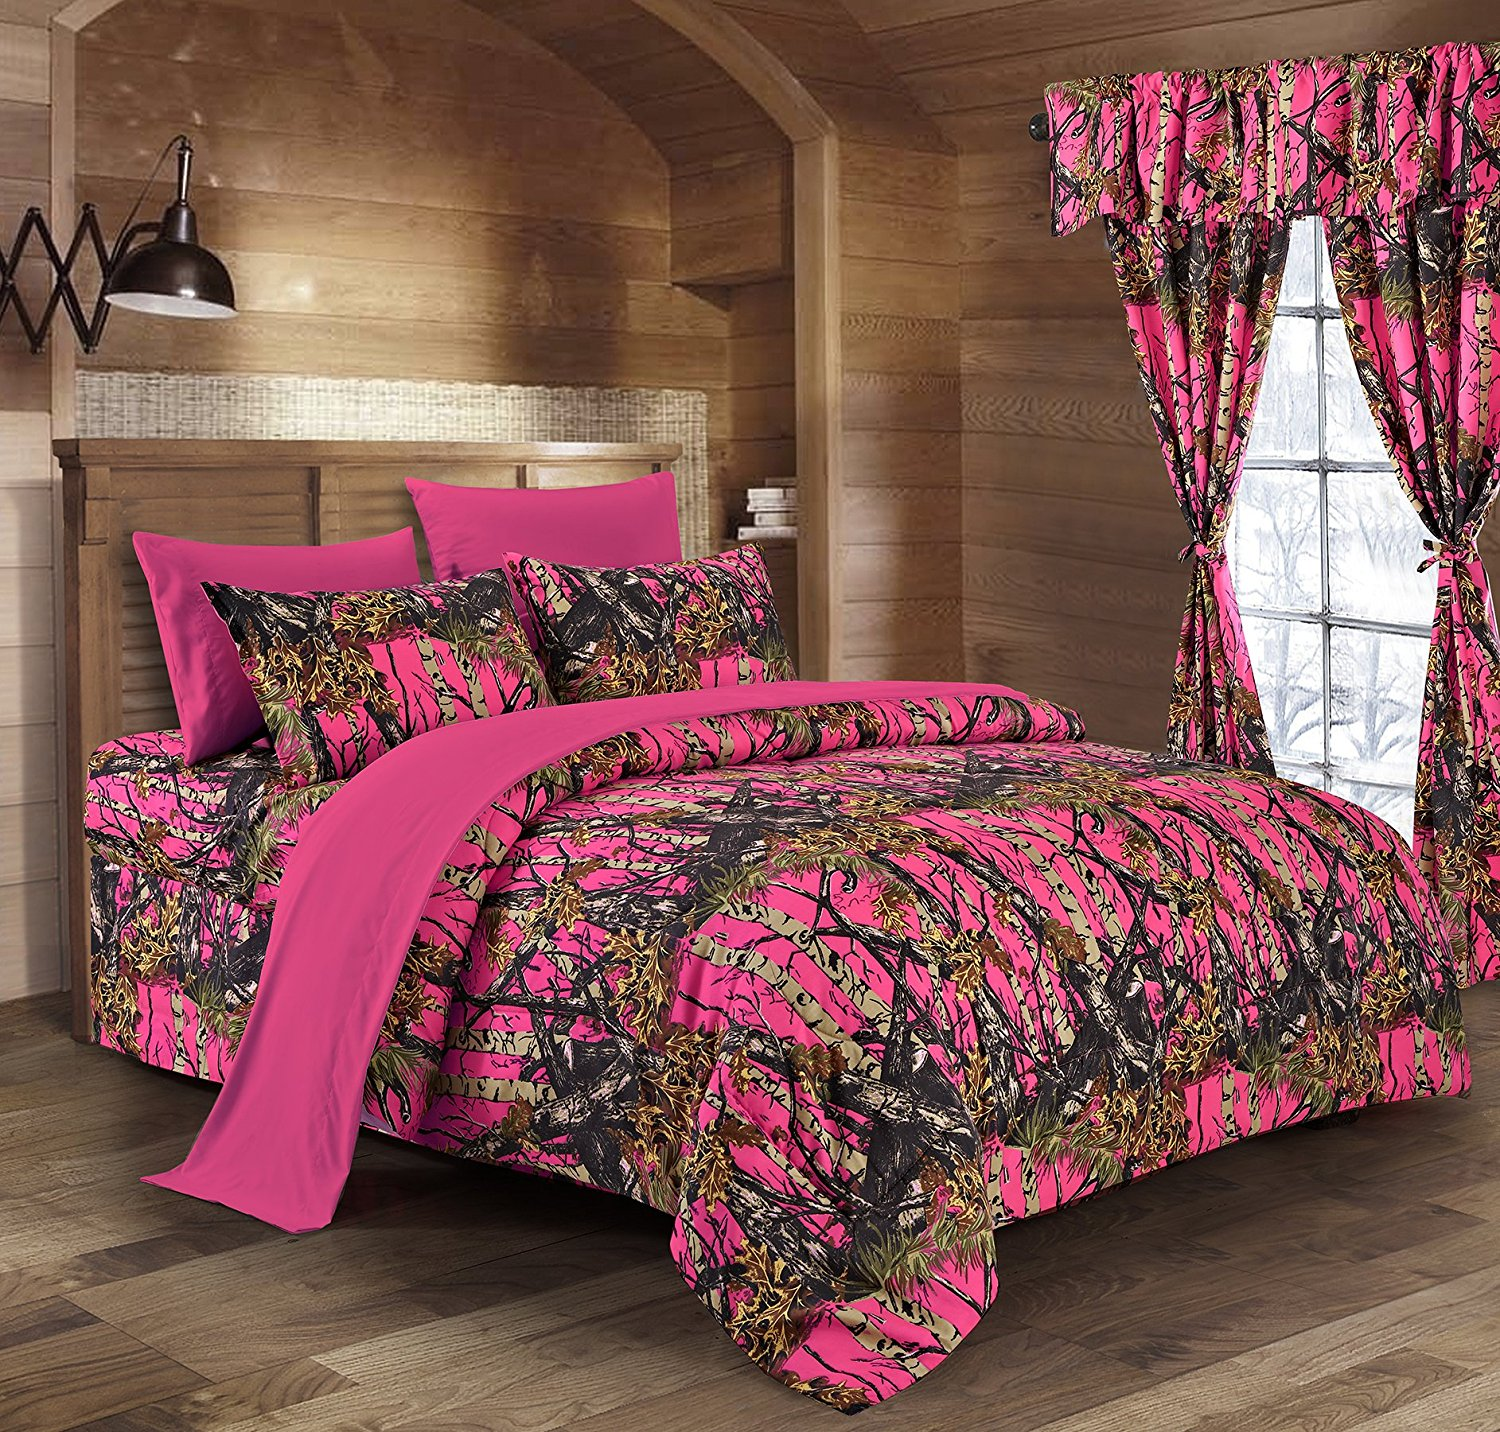 Regal Comfort The Woods High Viz Pink Camouflage Queen 8pc Premium Luxury Comforter, Sheet, Pillowcases, and Bed Skirt Set by Camo Bedding Set For Hunters Cabin or Rustic Lodge Teens Boys and Girls